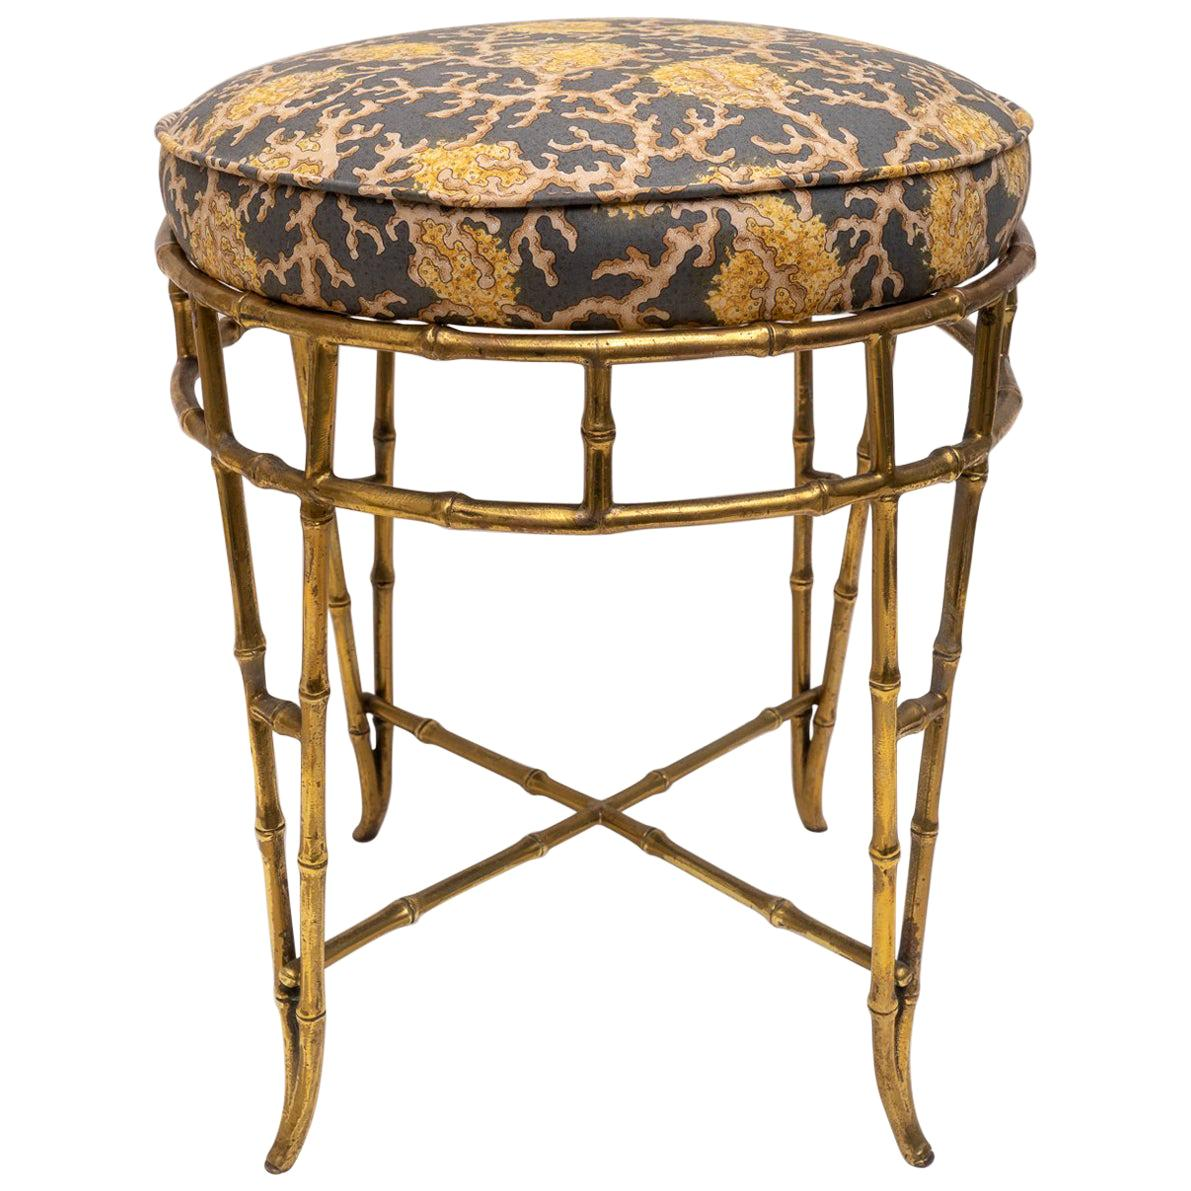 Groovy Brass Faux Bamboo Vanity Stool For Sale At 1Stdibs Theyellowbook Wood Chair Design Ideas Theyellowbookinfo